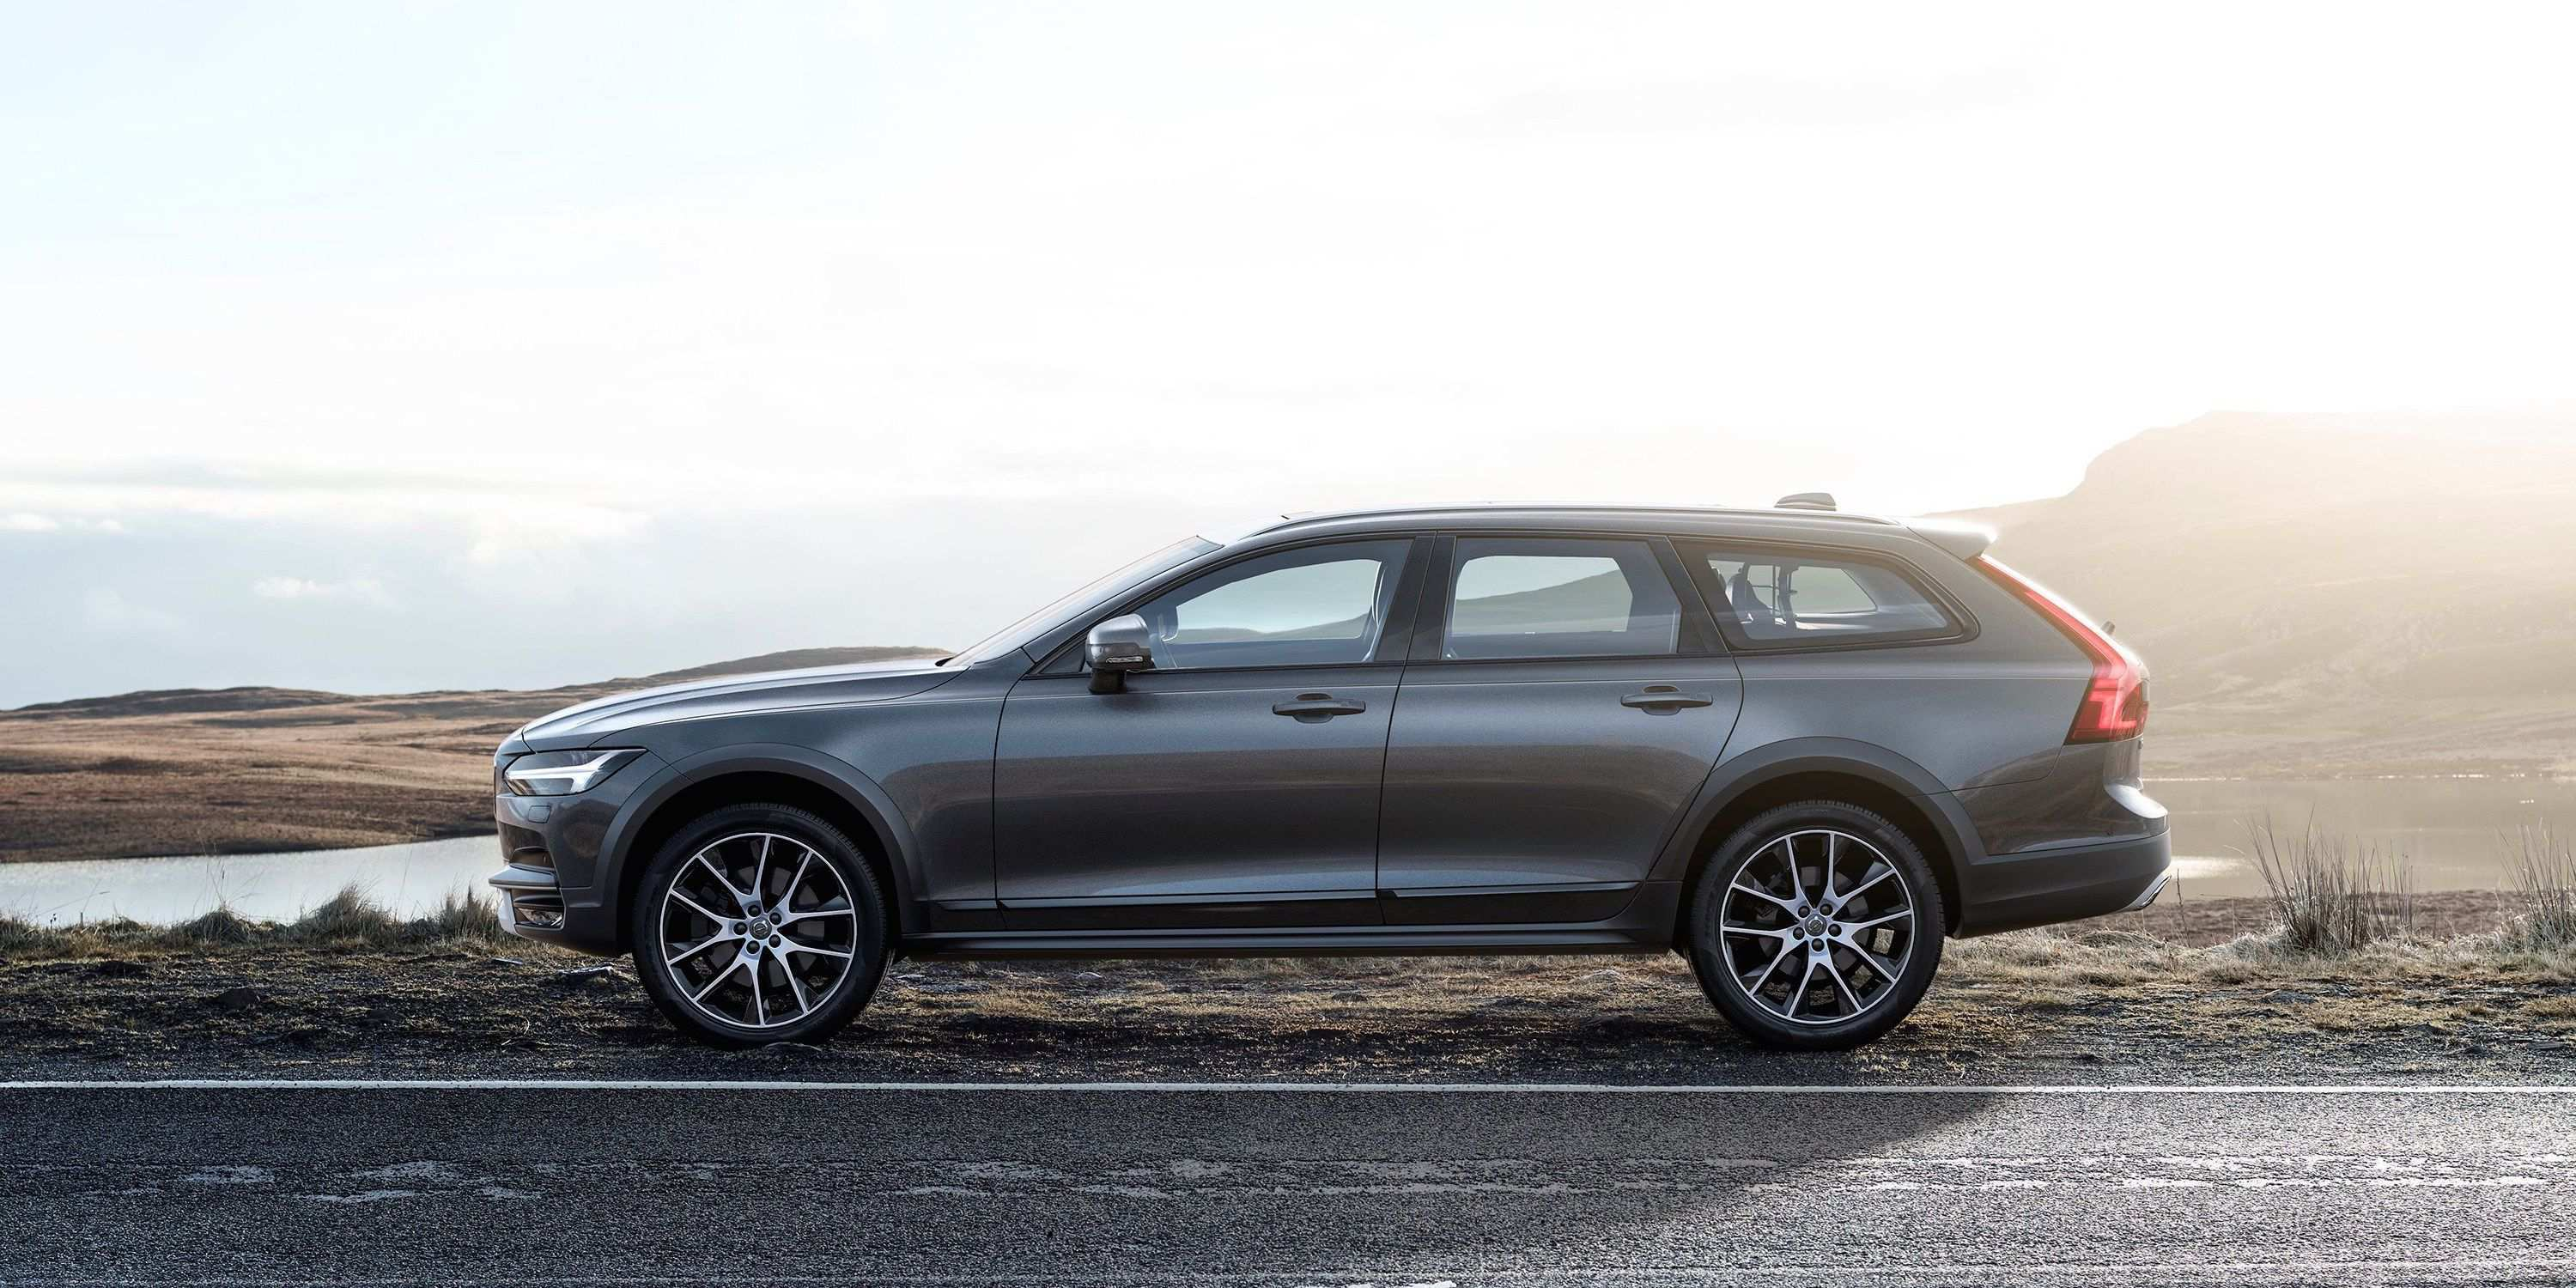 2020 Volvo Xc70 New Generation Wagon - Car Review : Car Review